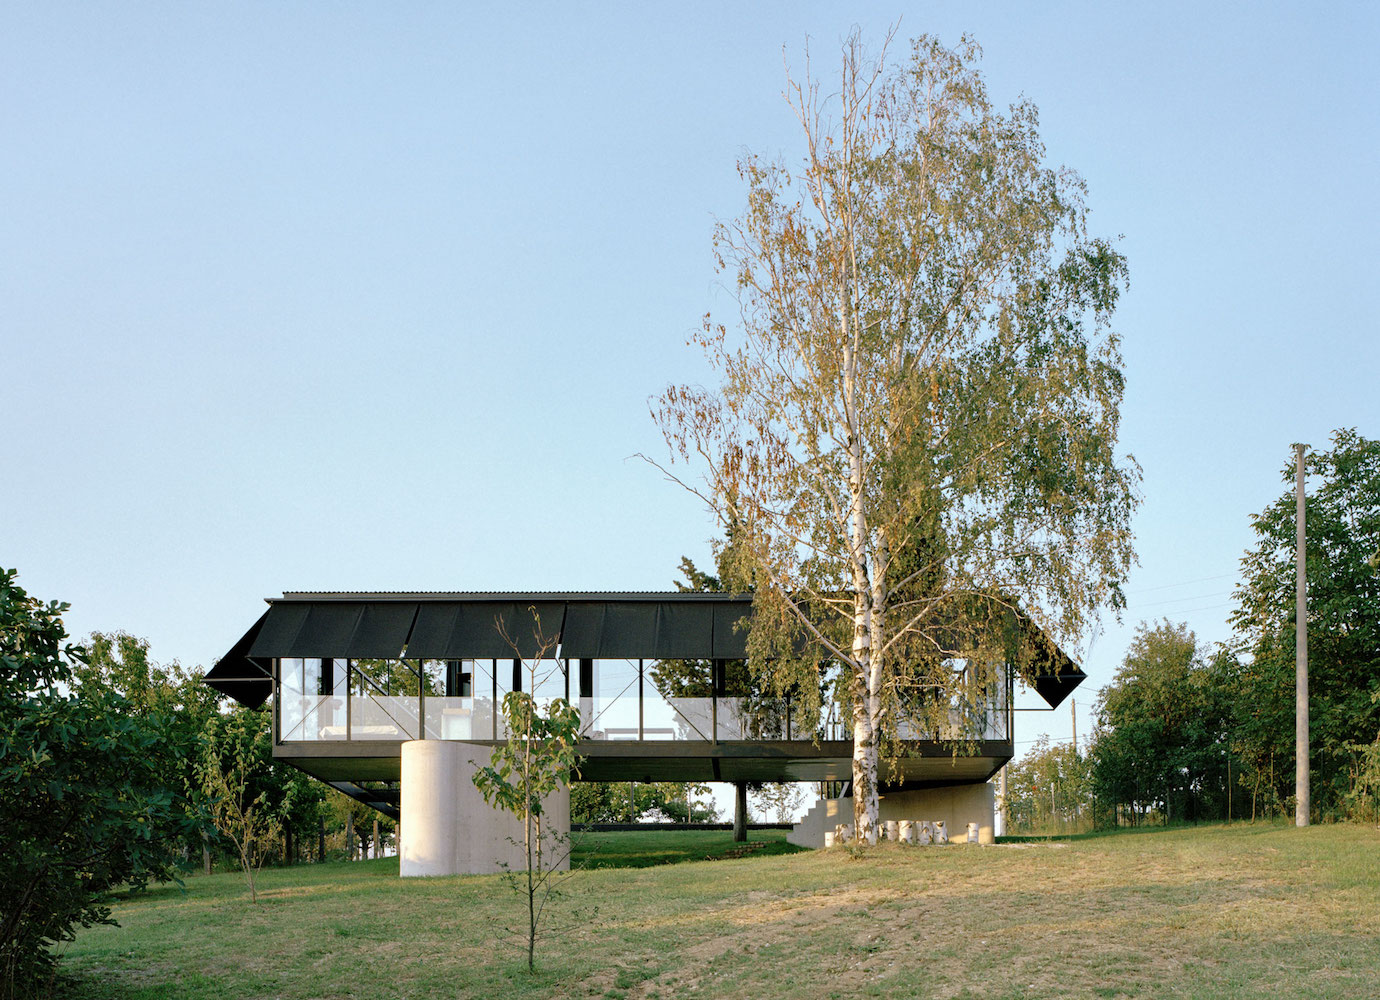 The levitating home: a Serbian mountain house stands metres above the ground